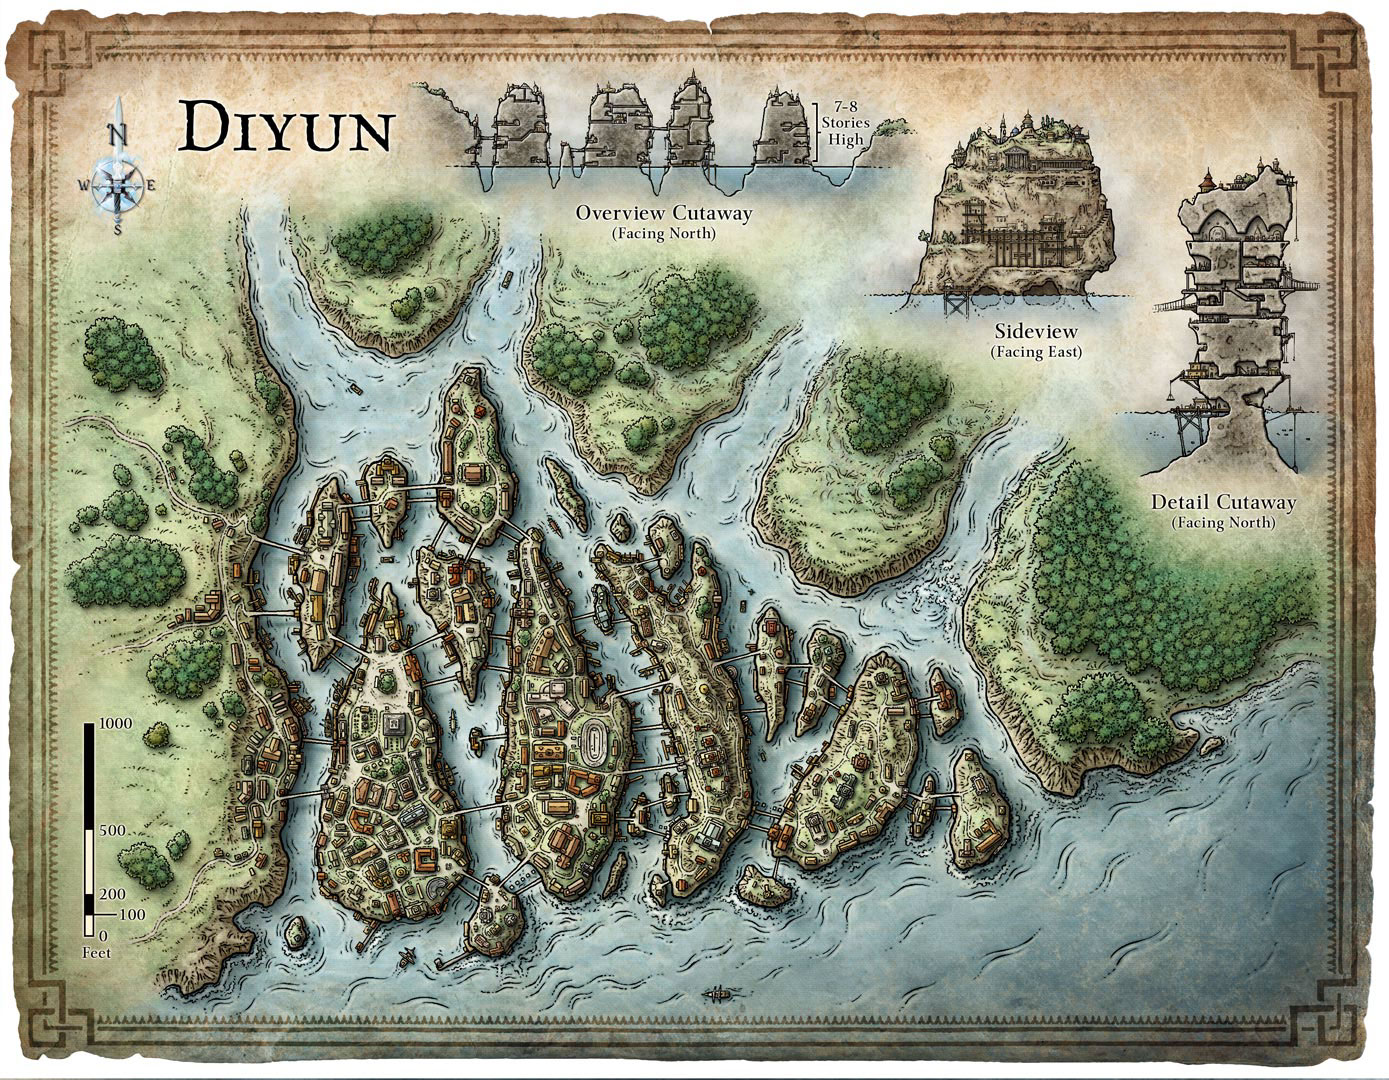 Map of Diyun